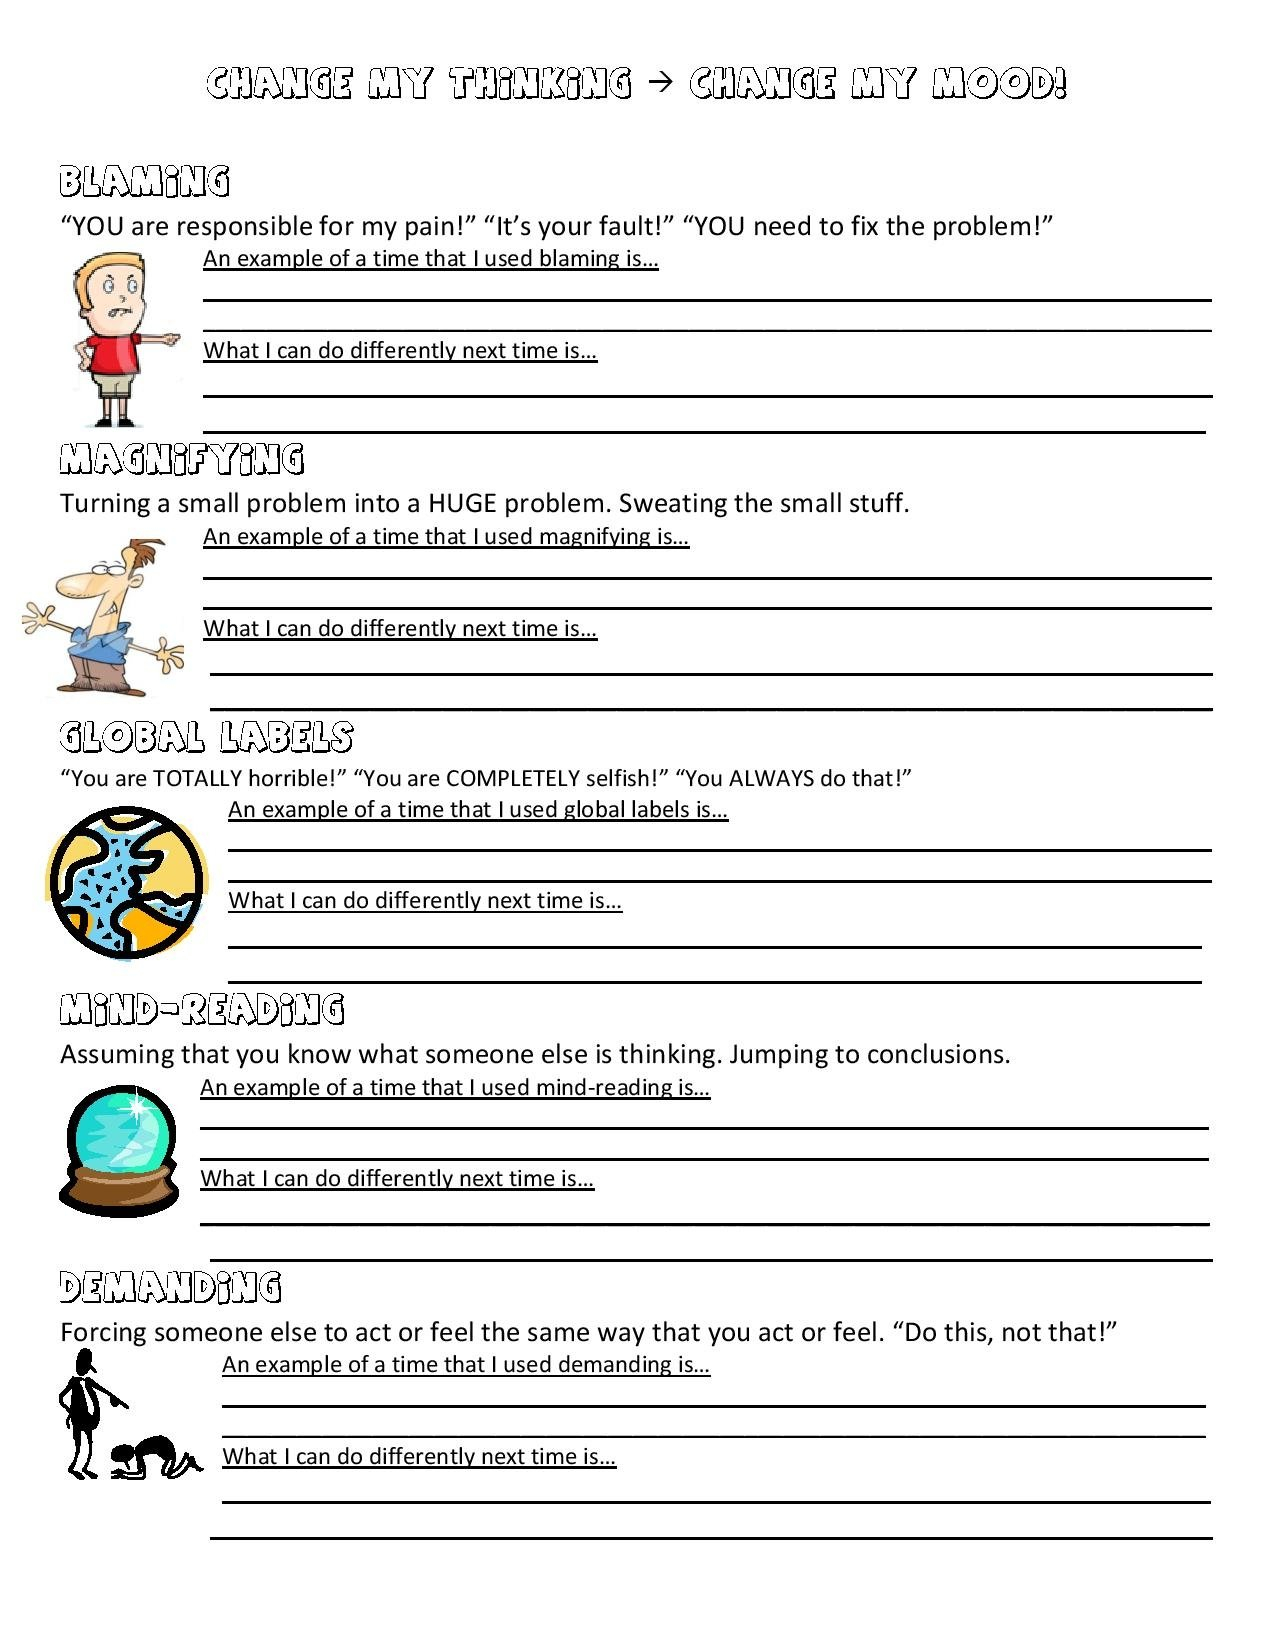 Anger Management Worksheet  Music City School Counselor Also Social Skills Worksheets For Middle School